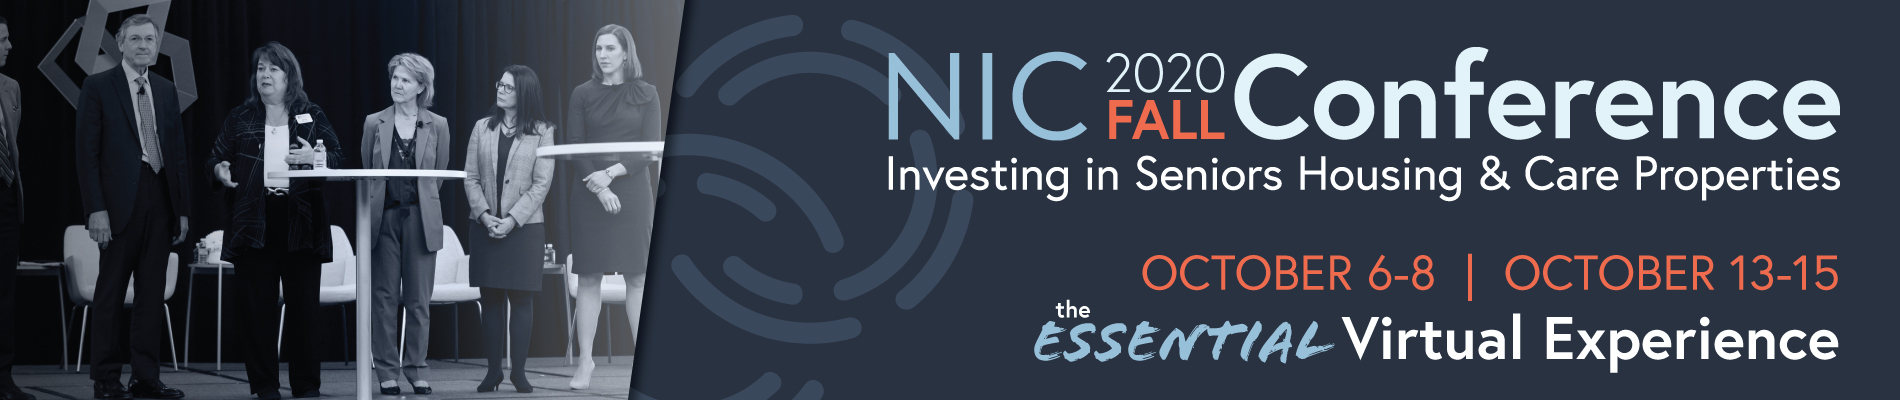 2020 NIC Fall Conference